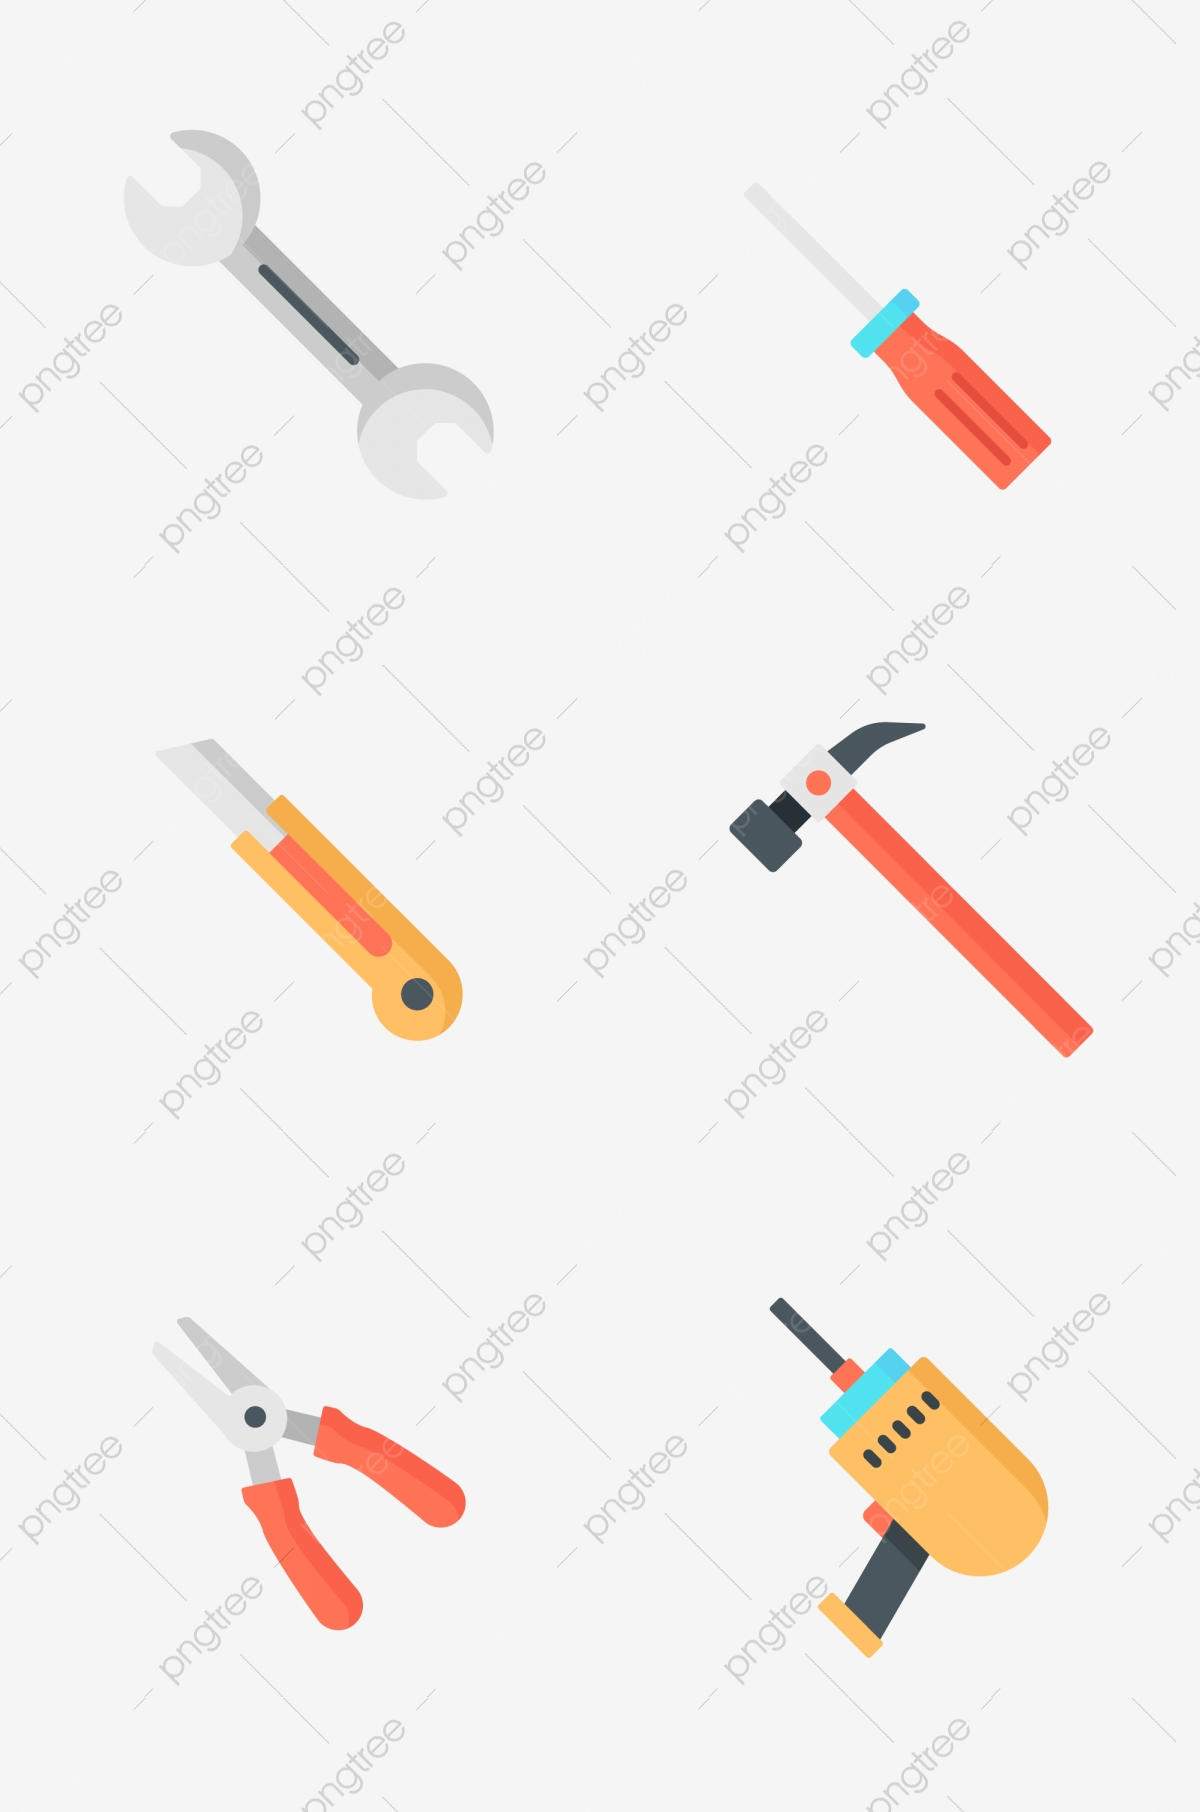 Household items tool wrench. Hammer clipart prototype